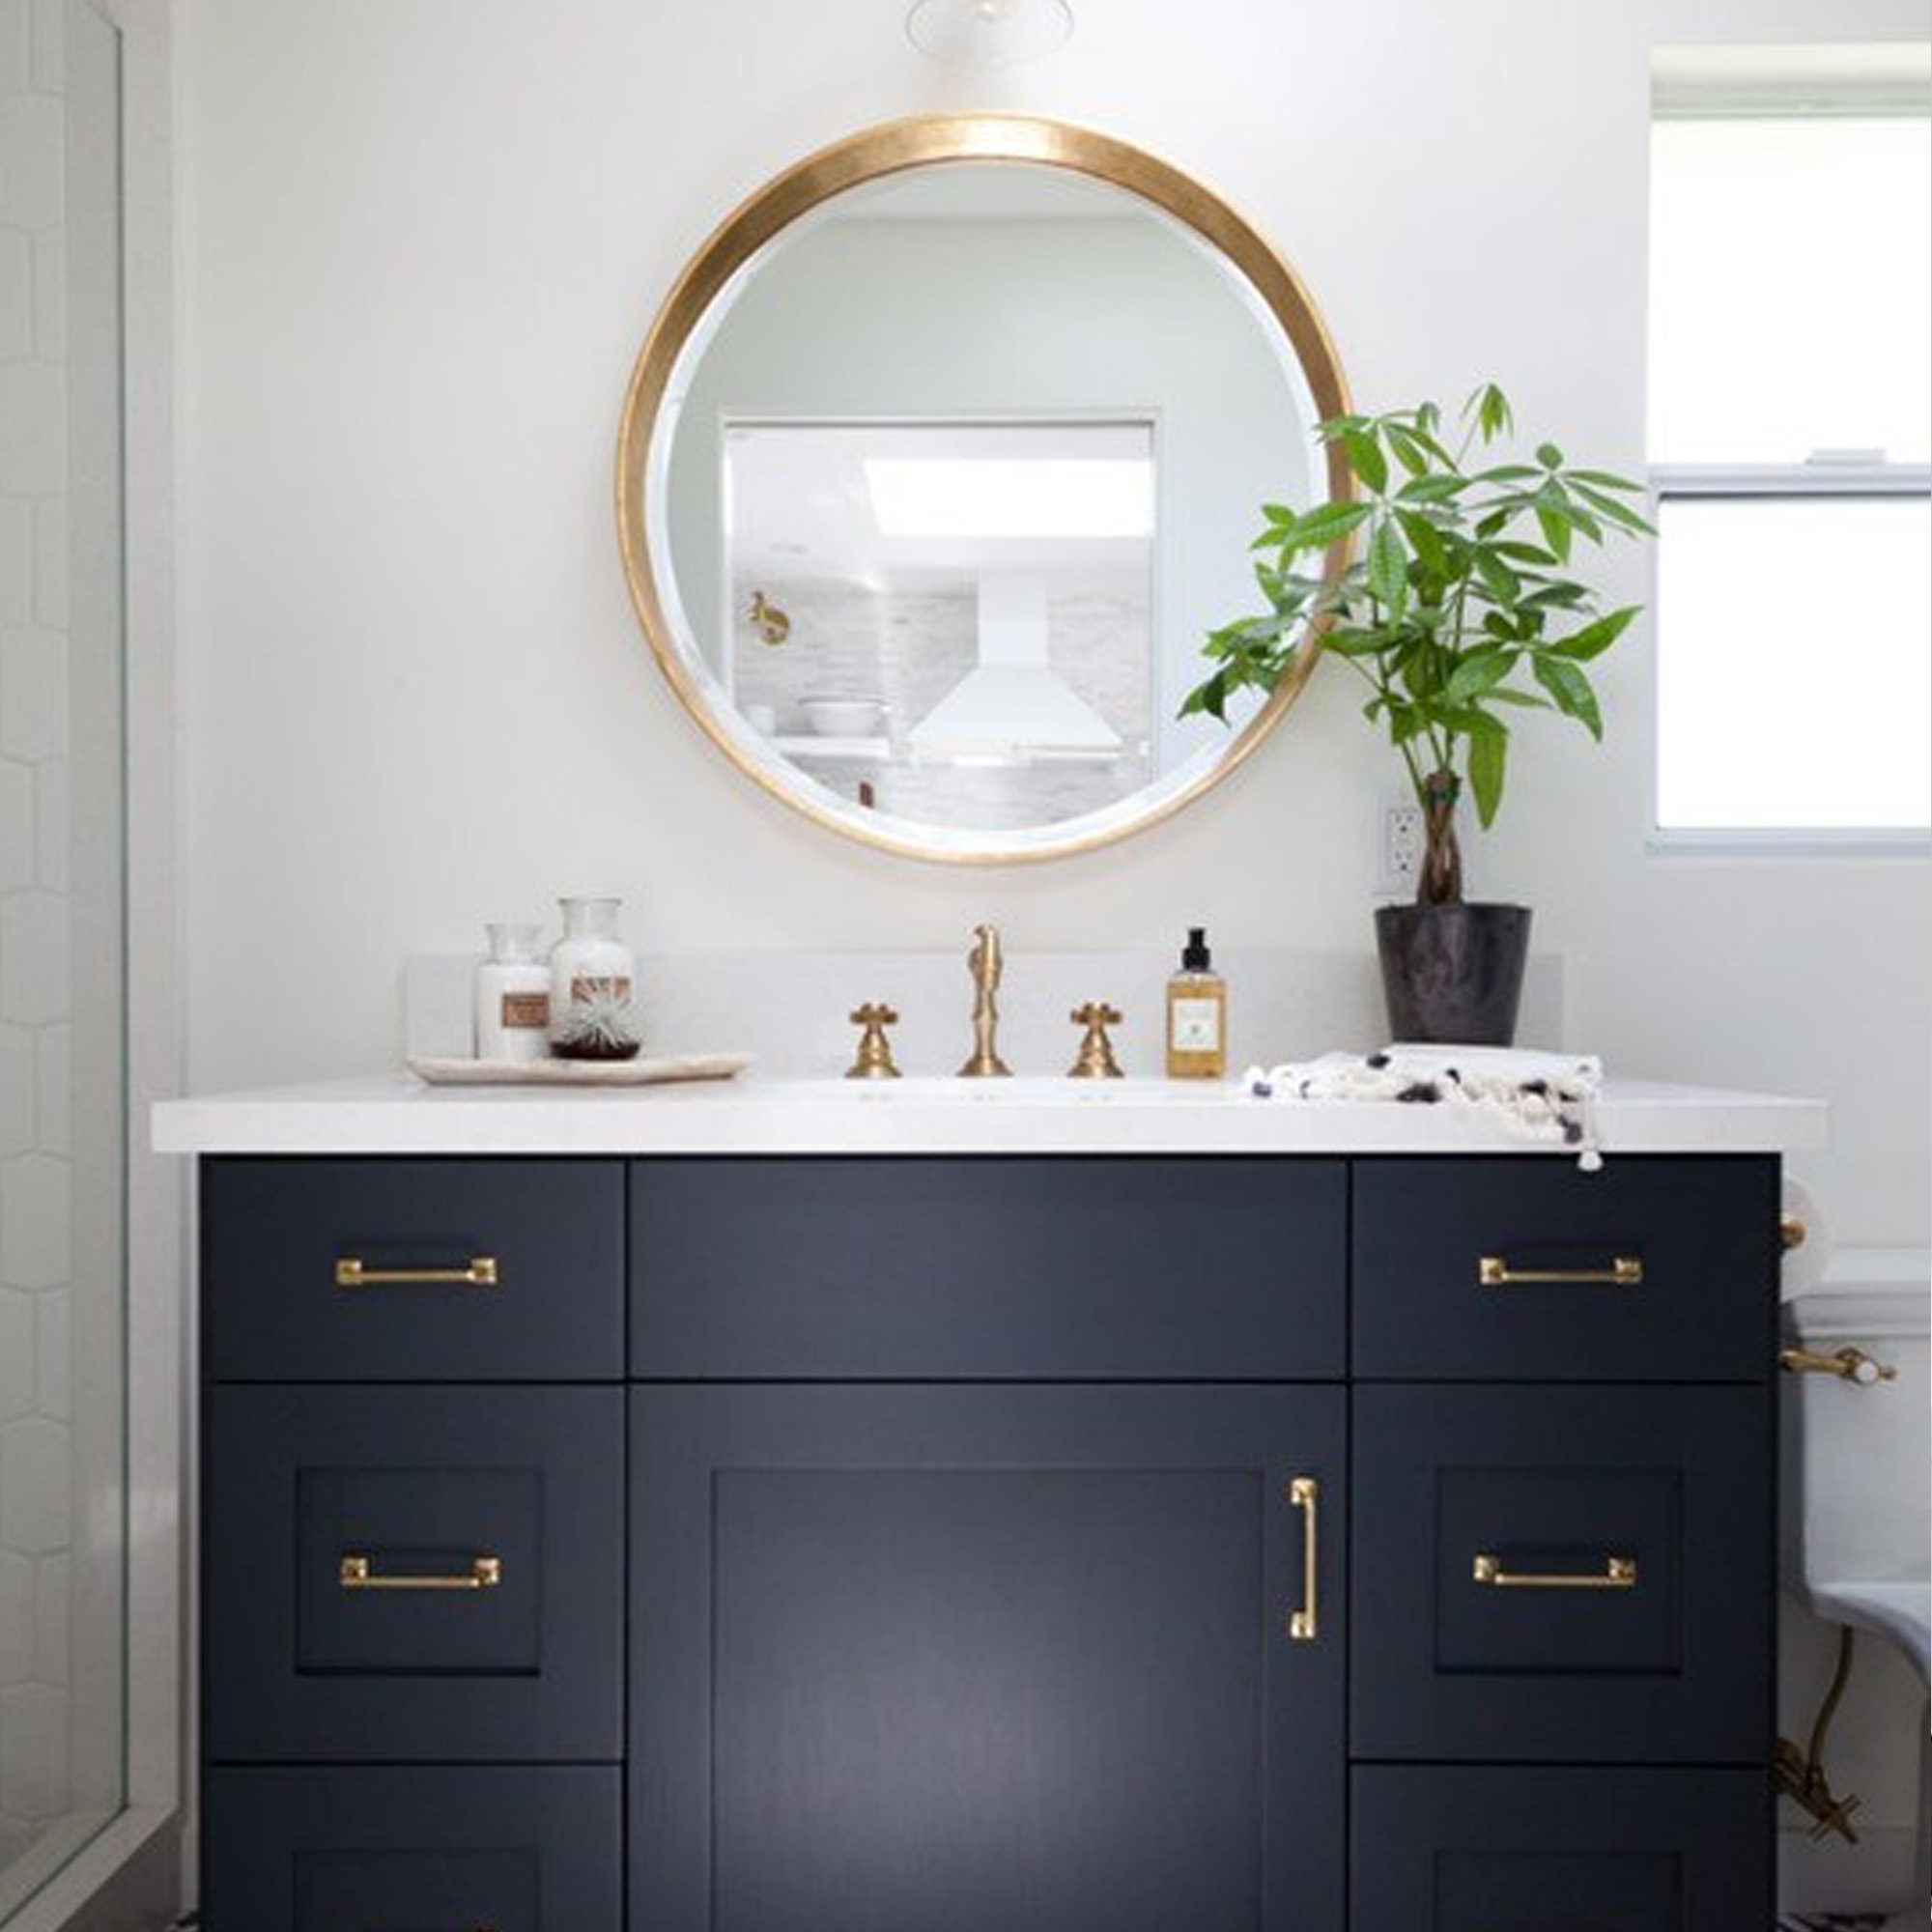 Vintage Interior Design How High To Place Your Bathroom Fixtures Inspired To Style